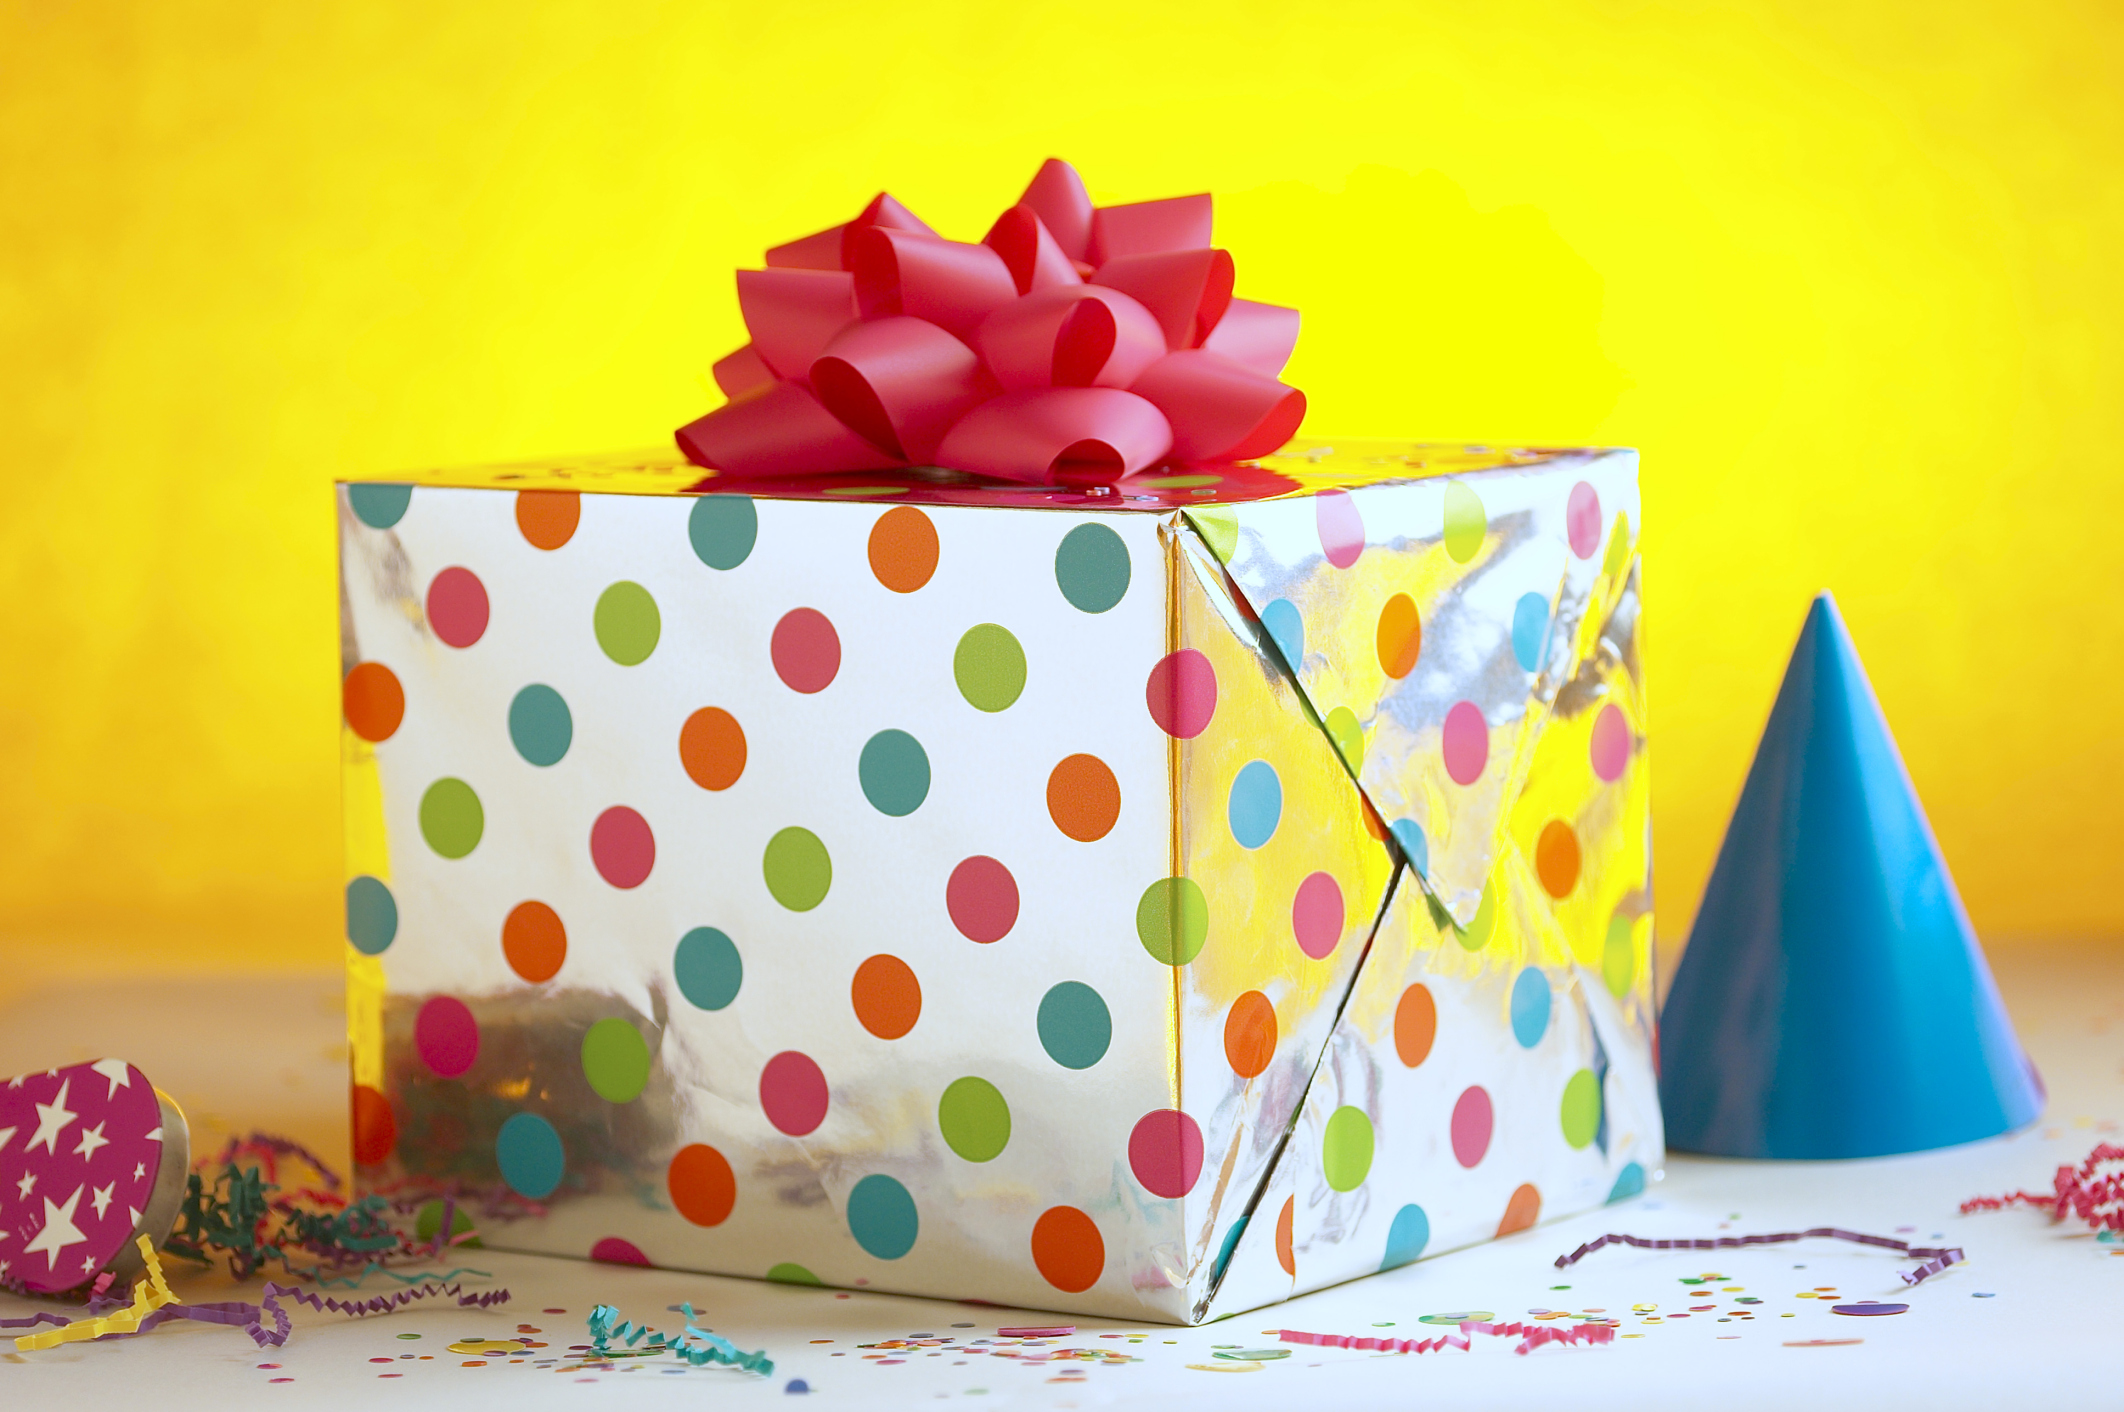 Gift Ideas For An 11-Year-Old Girl